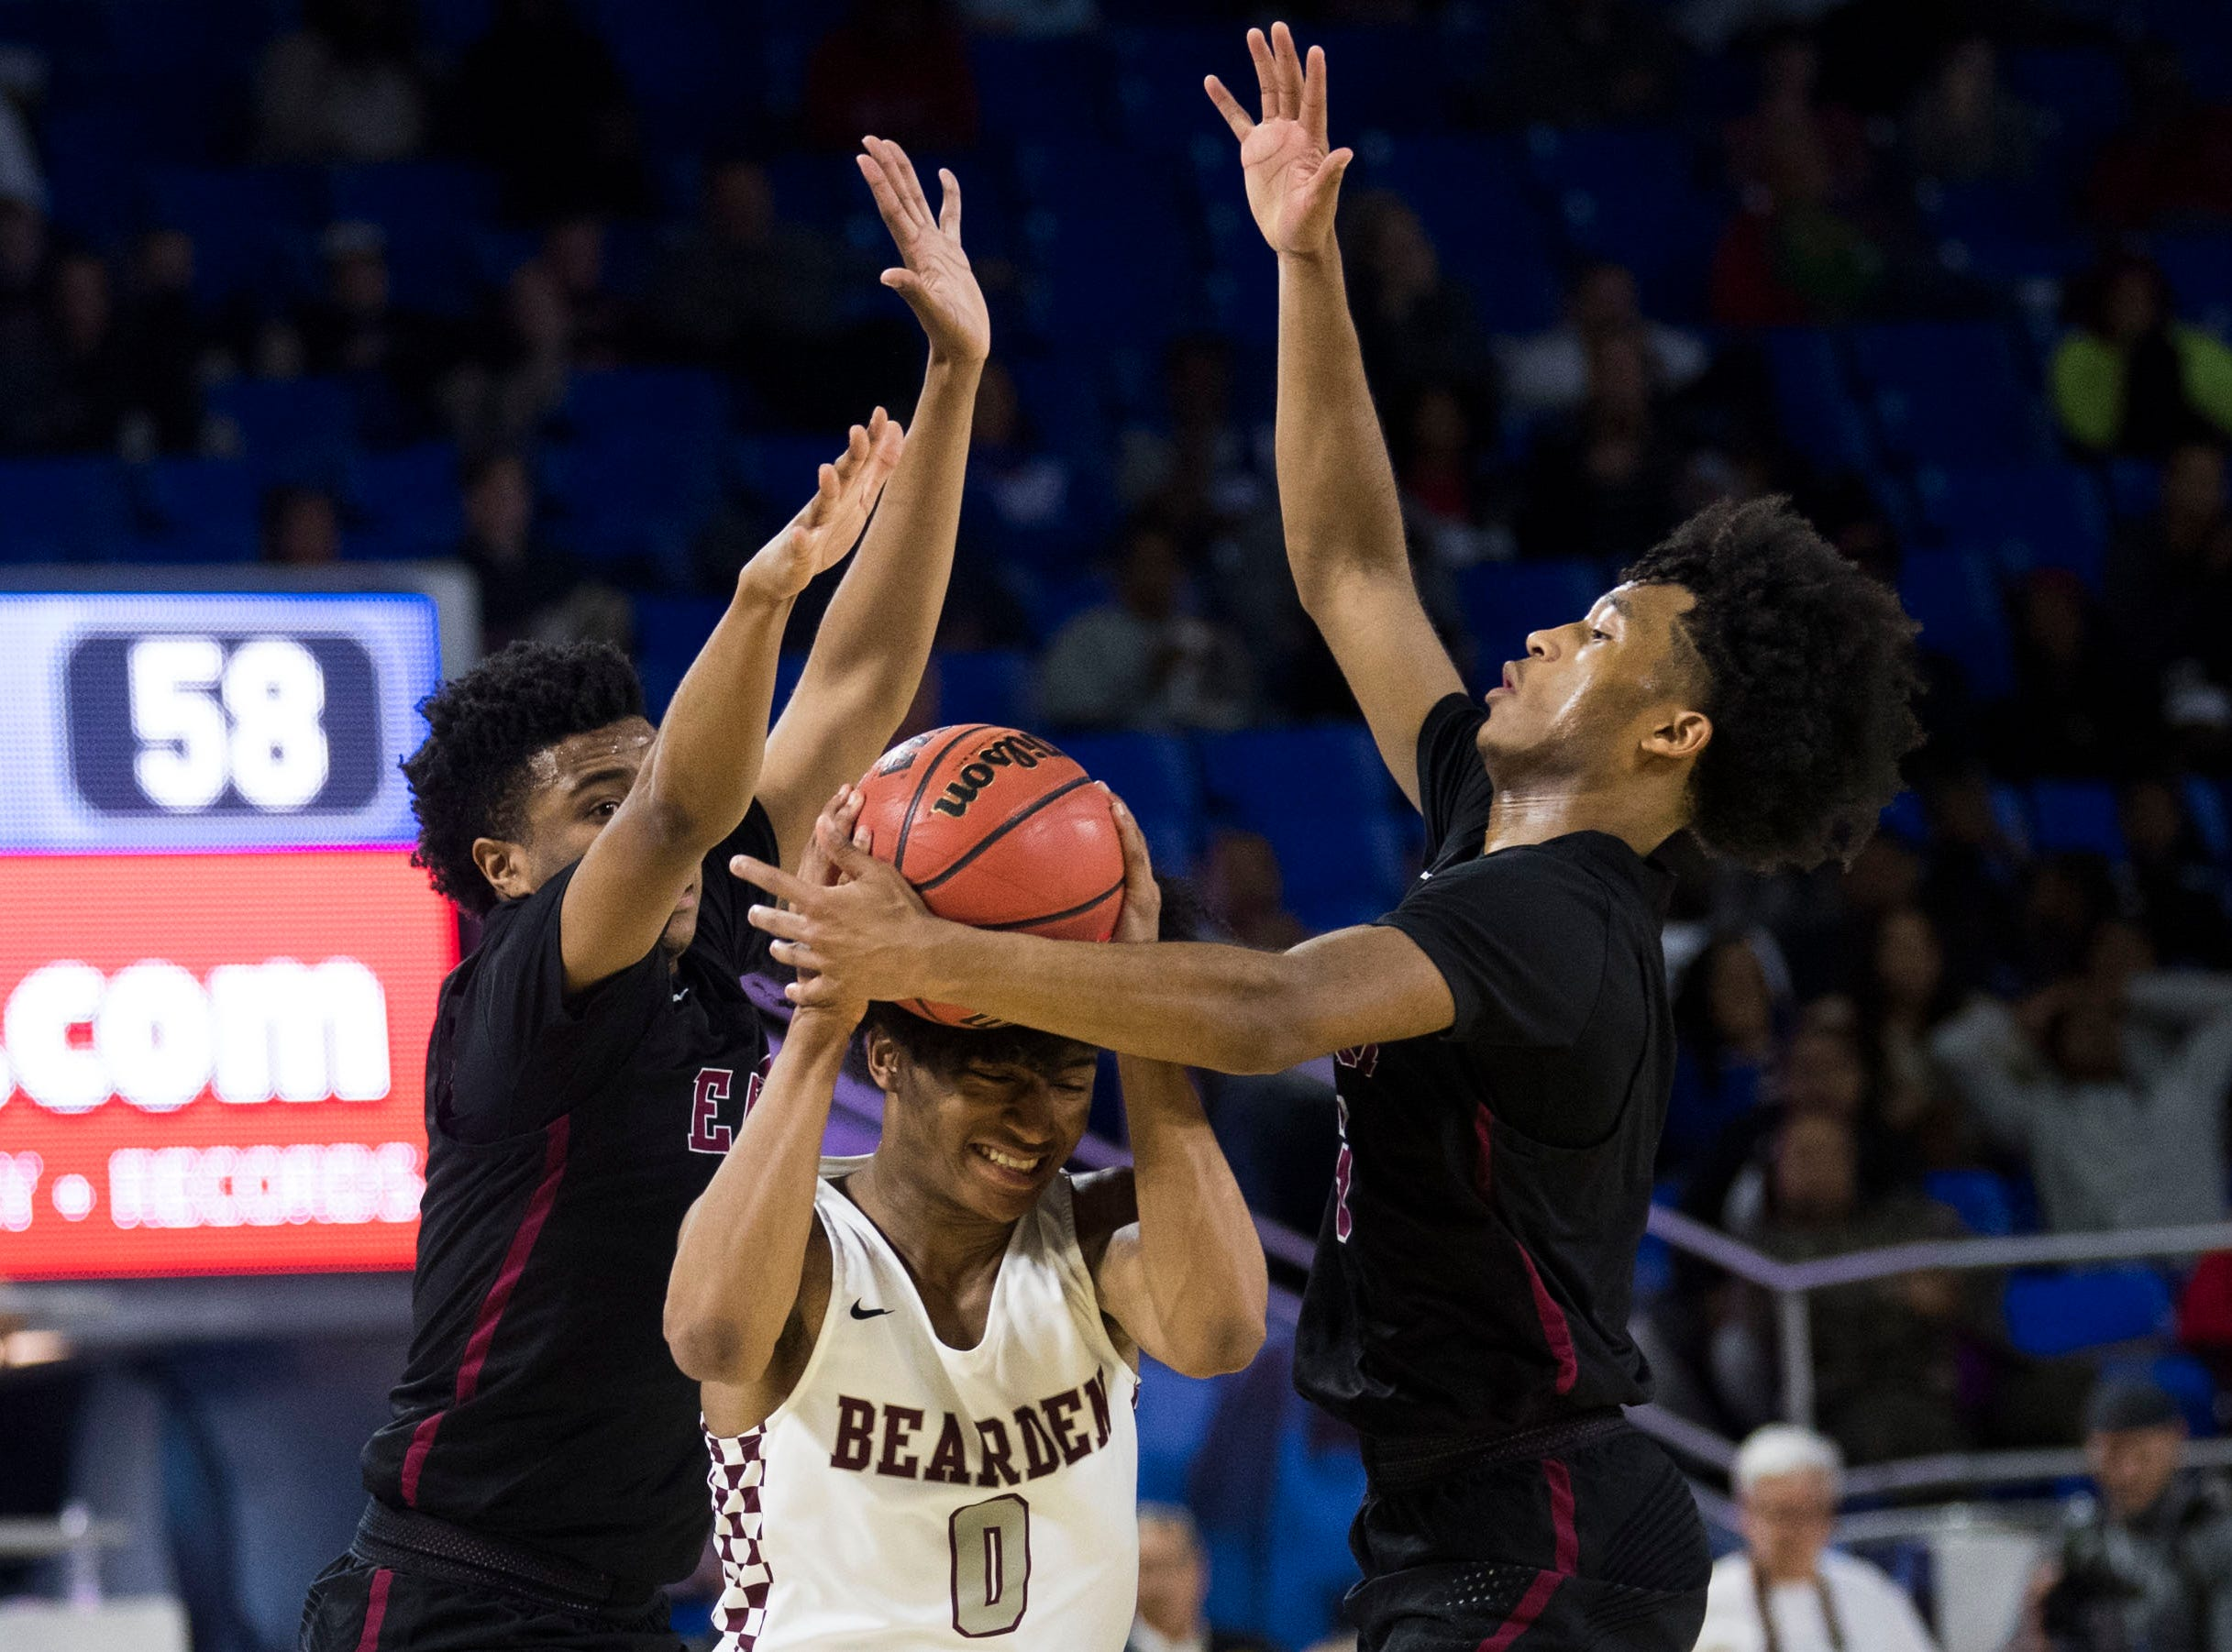 Bearden's Ques Glover (0) is defended by Memphis East during a TSSAA AAA state championship game at the Murphy Center in Murfreesboro, Saturday, March 16, 2019. Bearden defeated East 83-68.